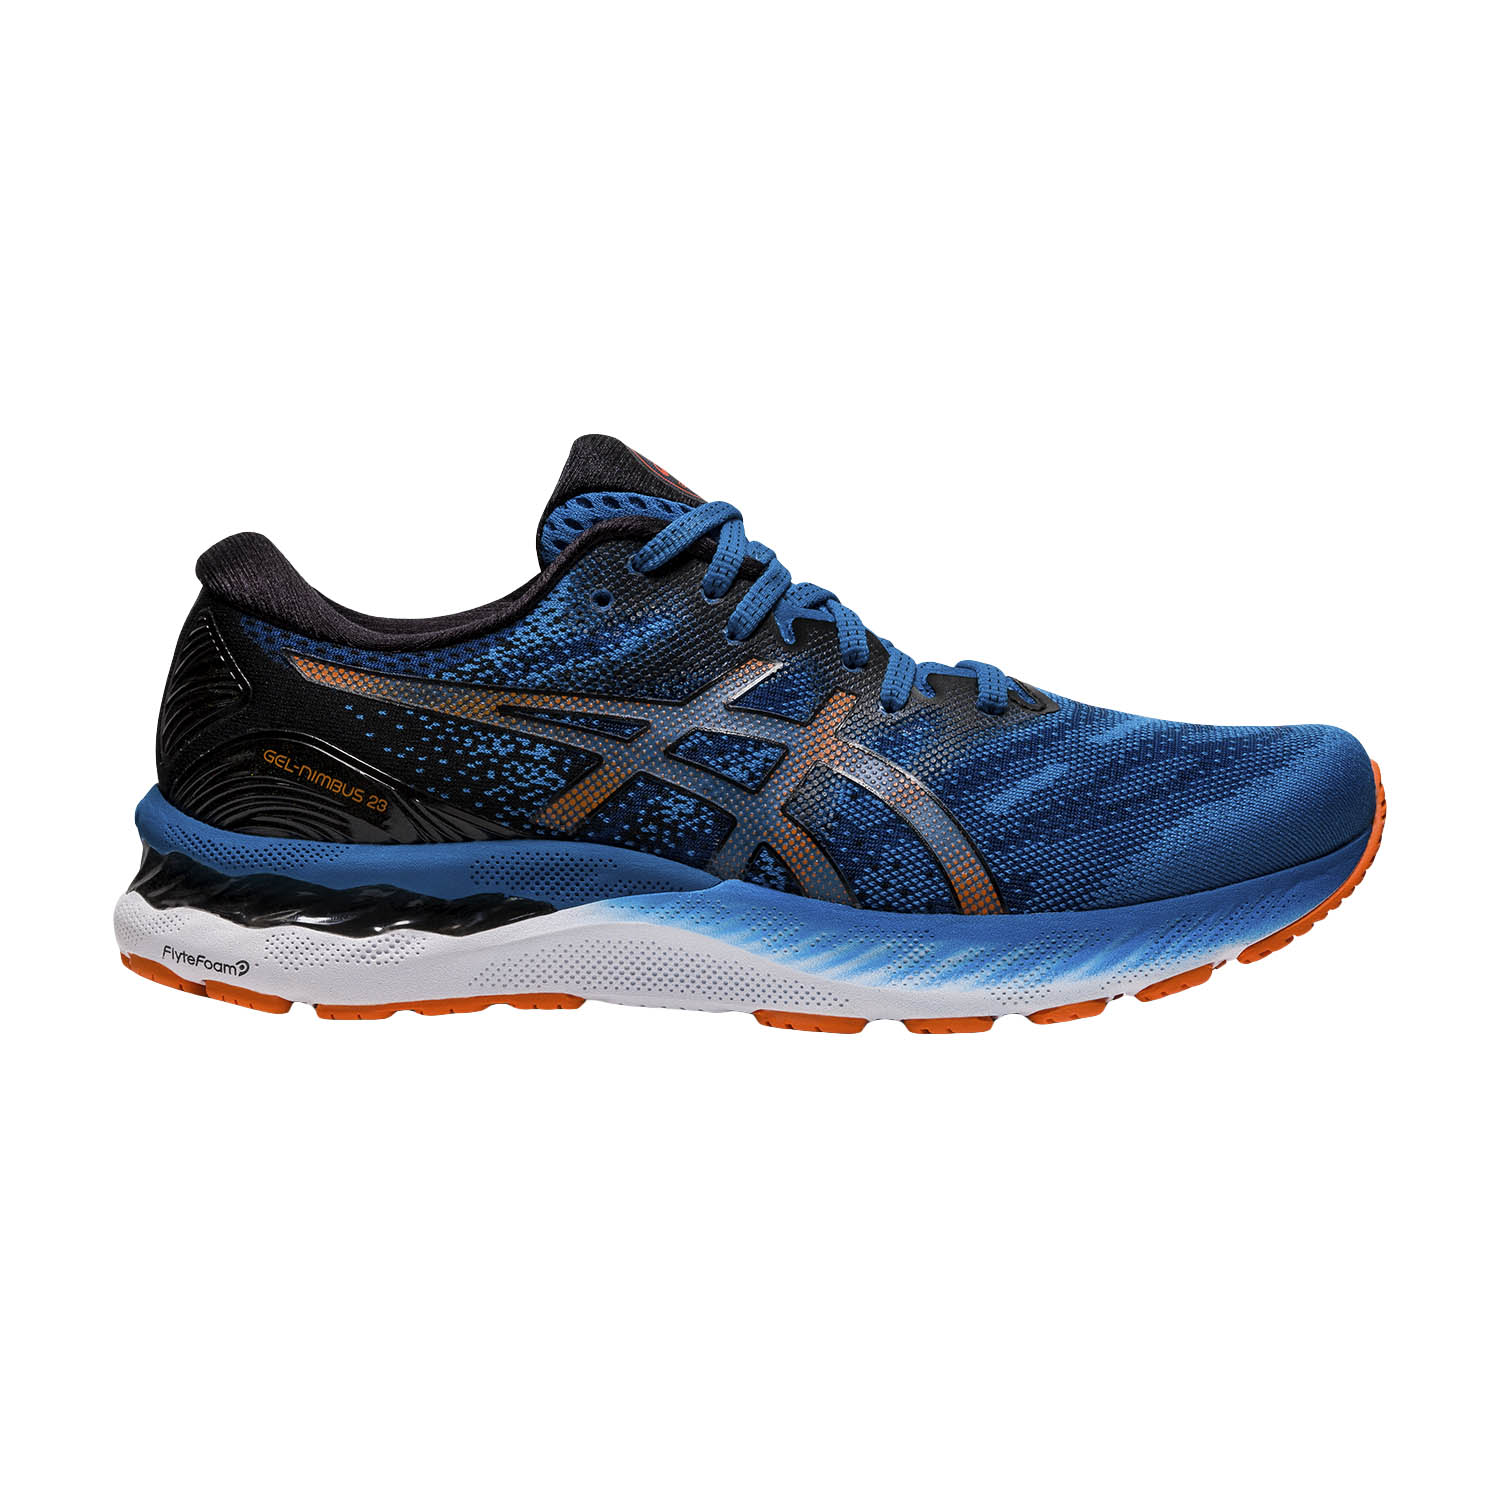 Asics Gel Nimbus 23 - Reborn Blue/Black